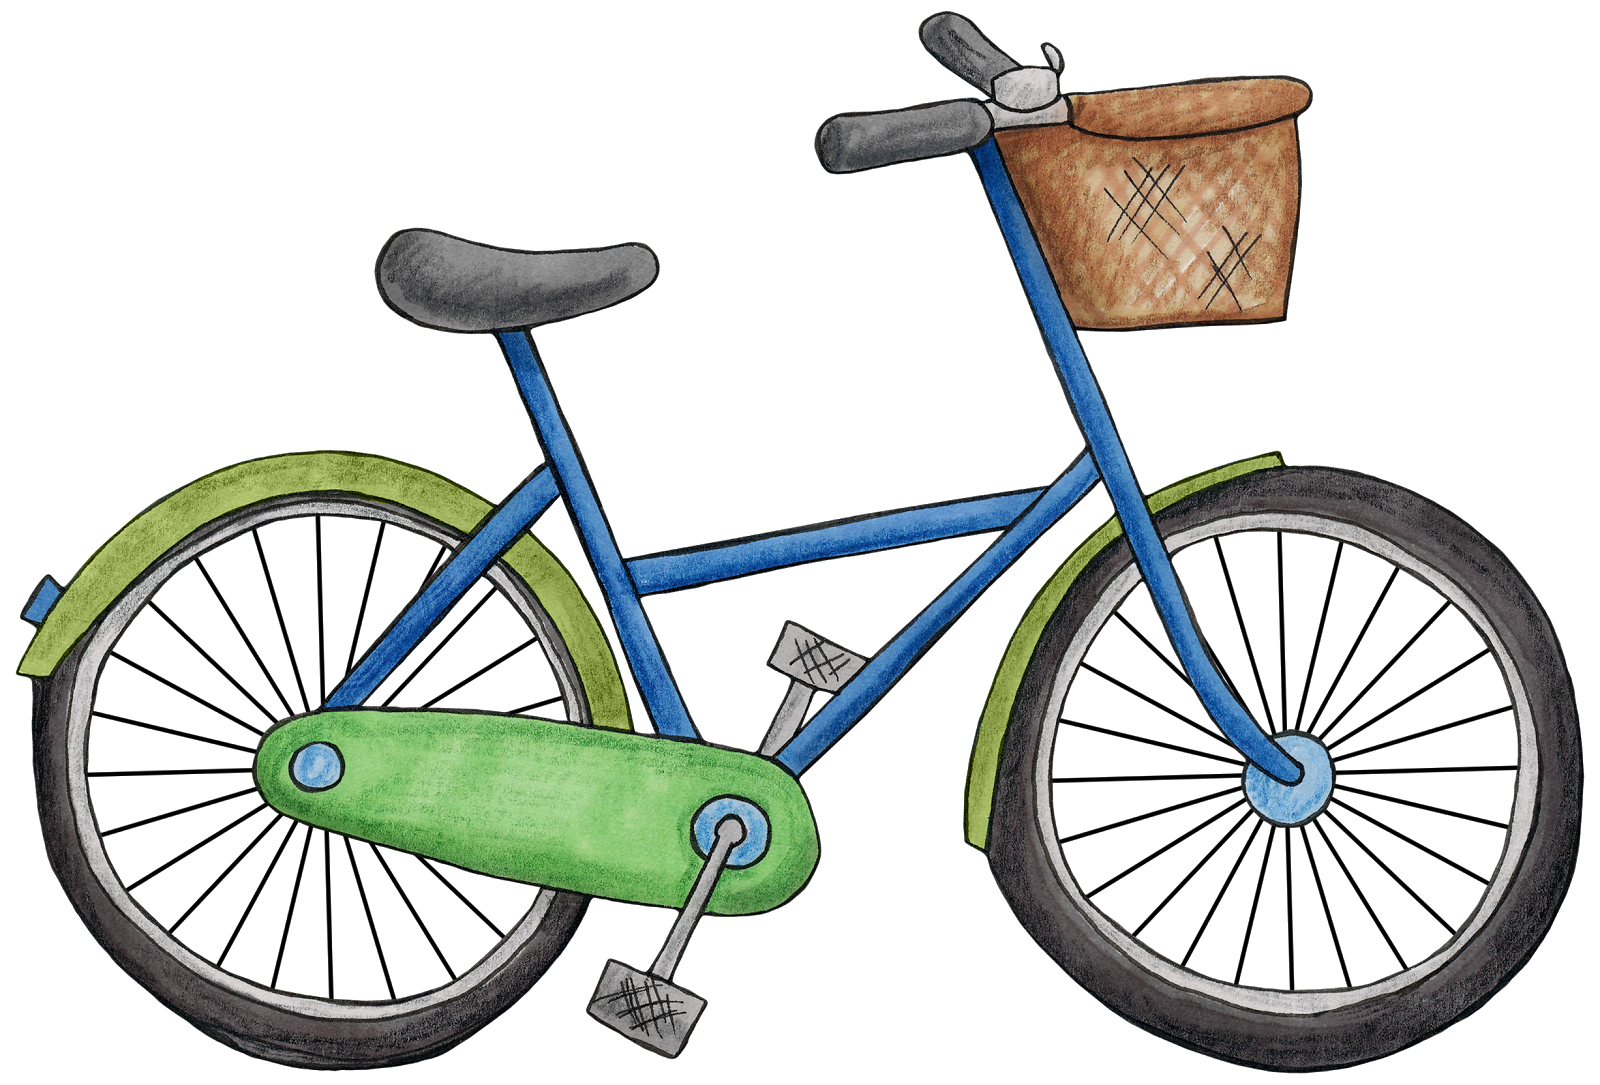 Bicycles, Bike Clipart Images Free Download Pictures image #45181